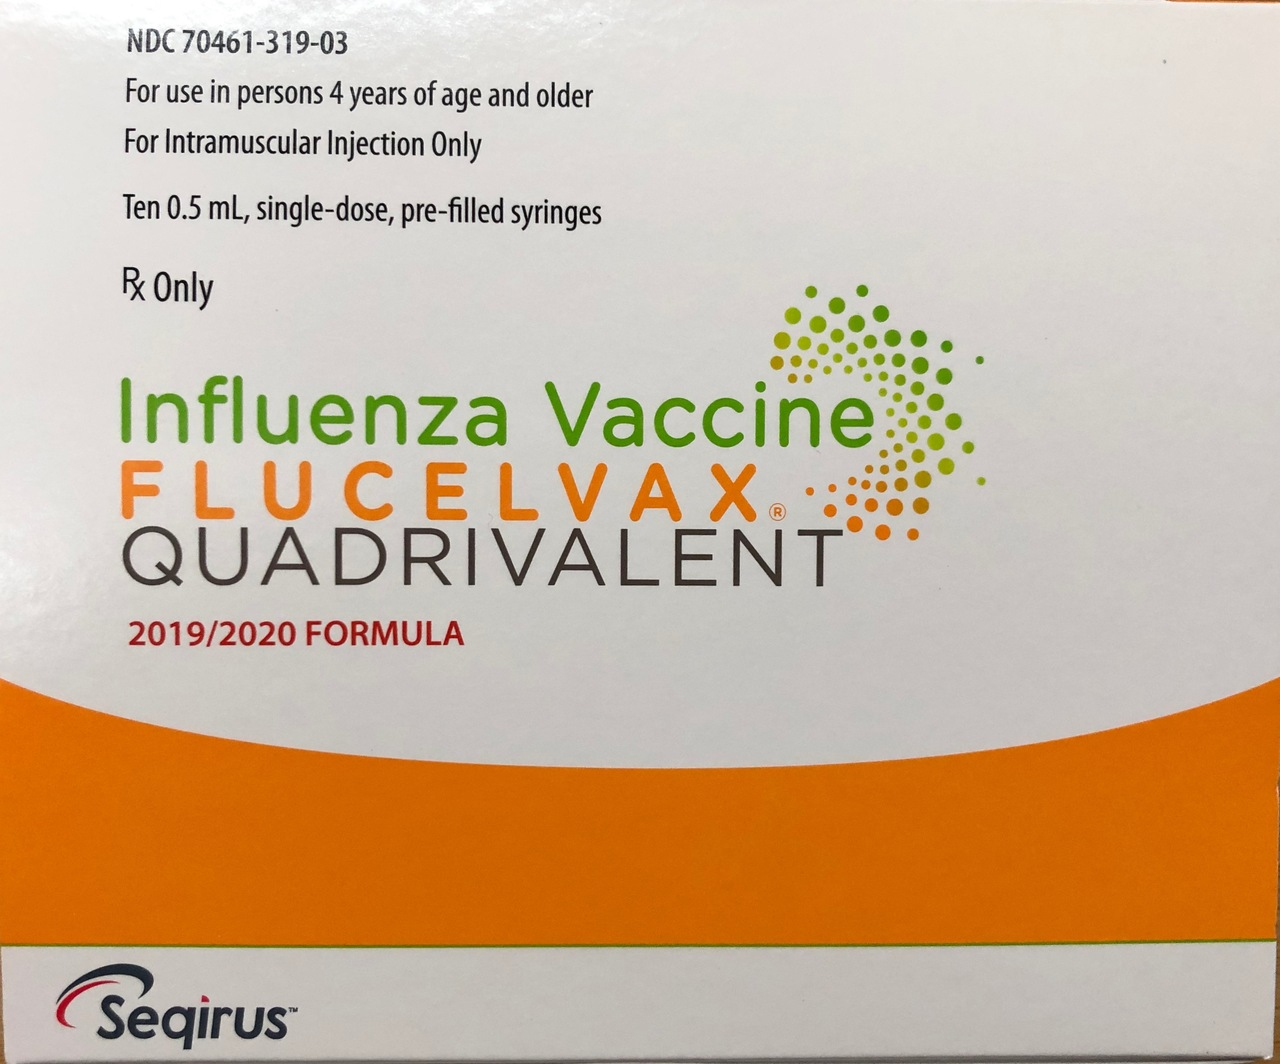 RX ITEM-Flucelvax Seqirus Quad In Pfs 10/Pk .5Ml Syringe 10 For 2019-20 BY SEQUI